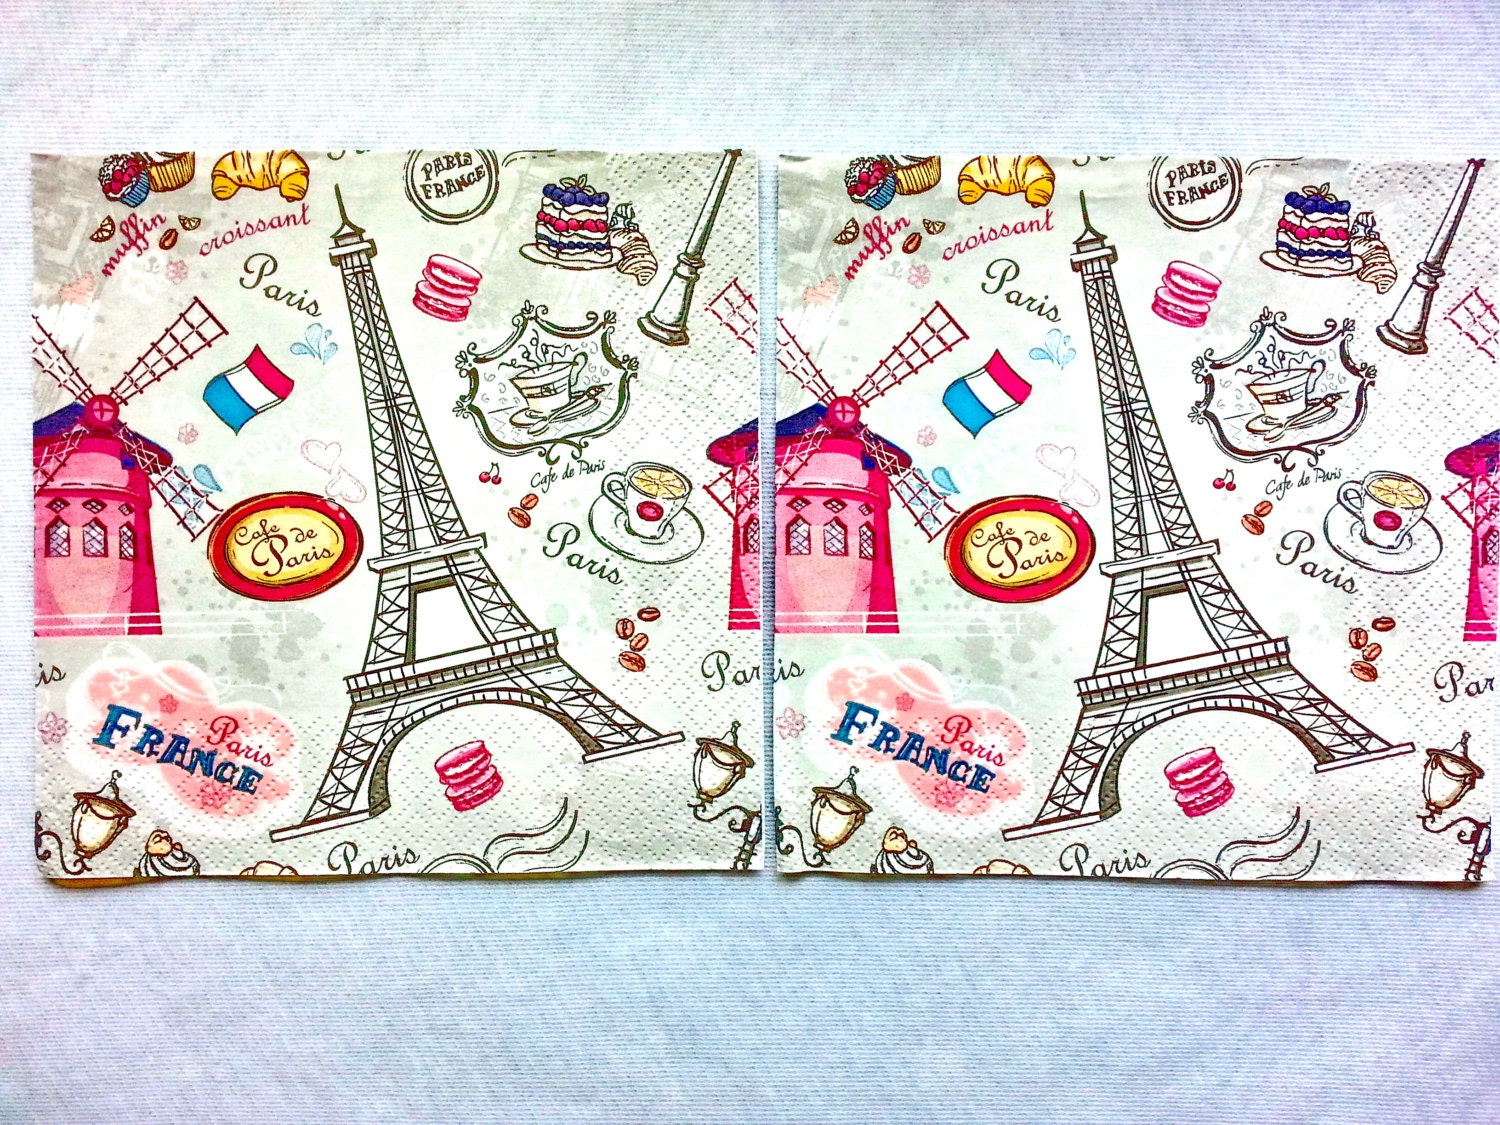 2 Pcs Decoupage Cafe De Paris Vintage Napkinsnapkins For